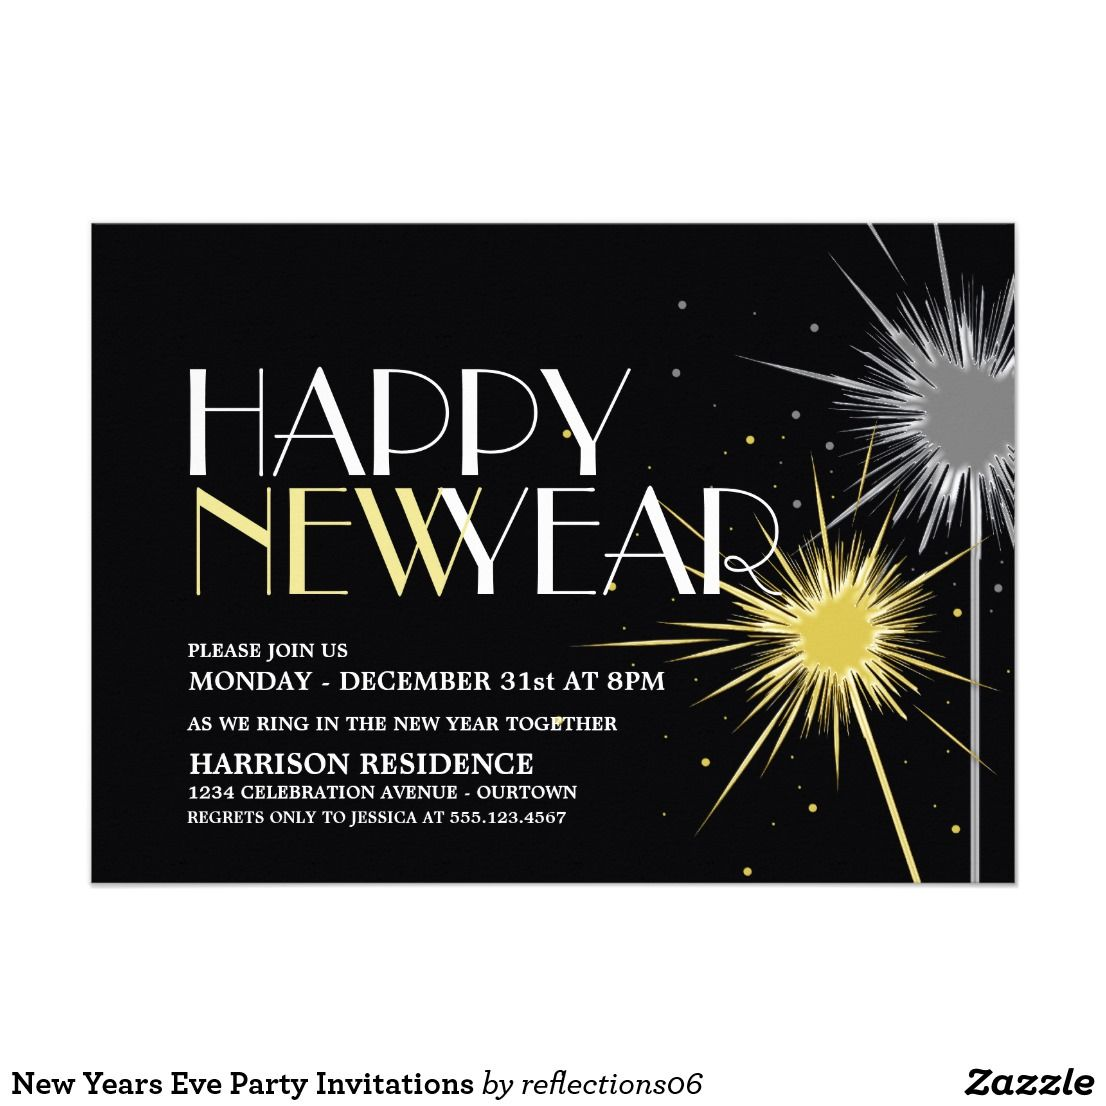 new years eve party invitations customize these fun silver and gold sparkler new years eve party